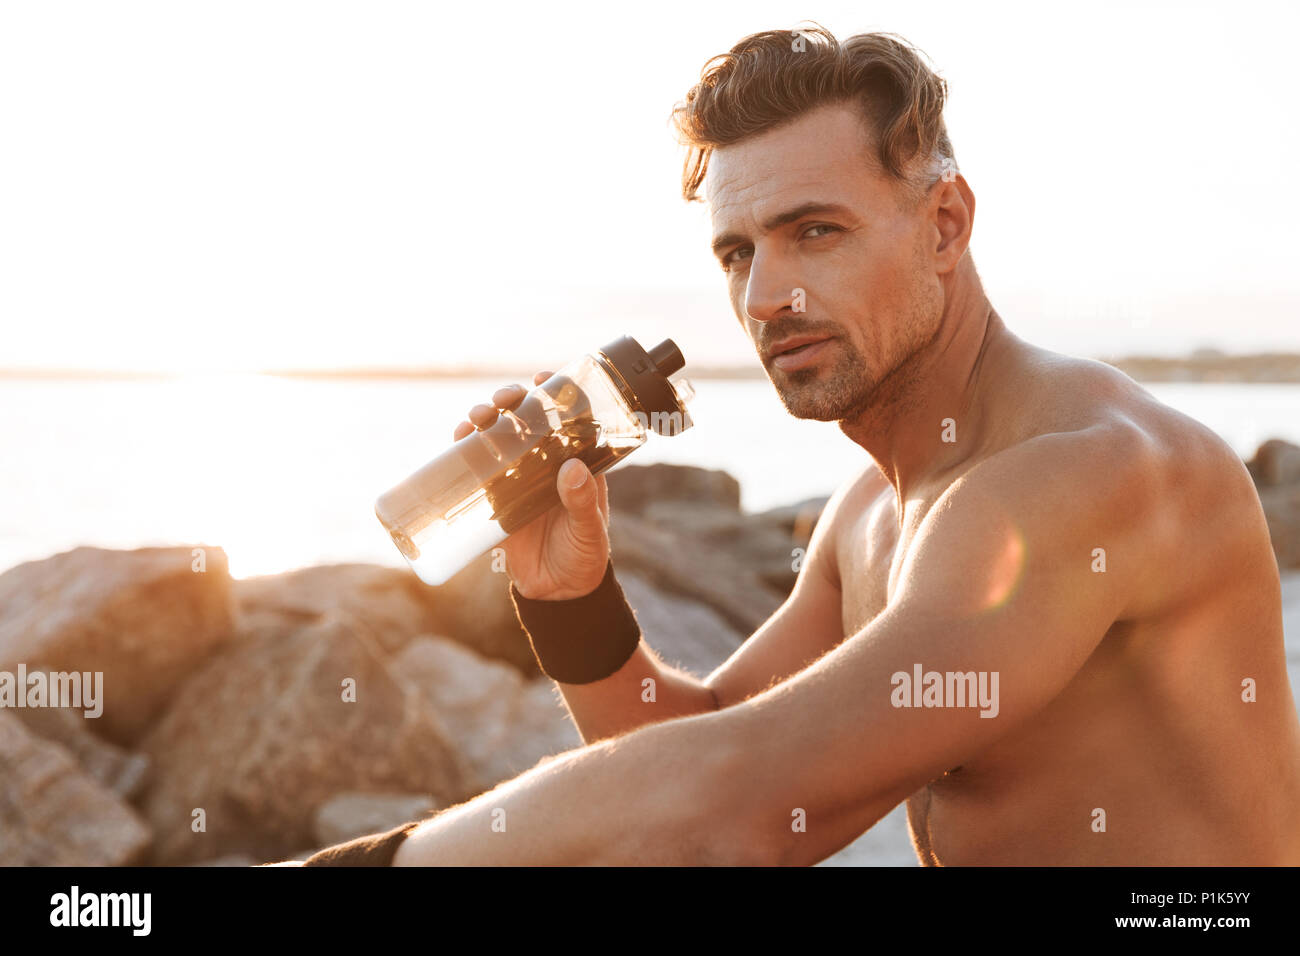 Portrait of a muscular shirtless sportsman resting after jogging and drinking water outdoors - Stock Image